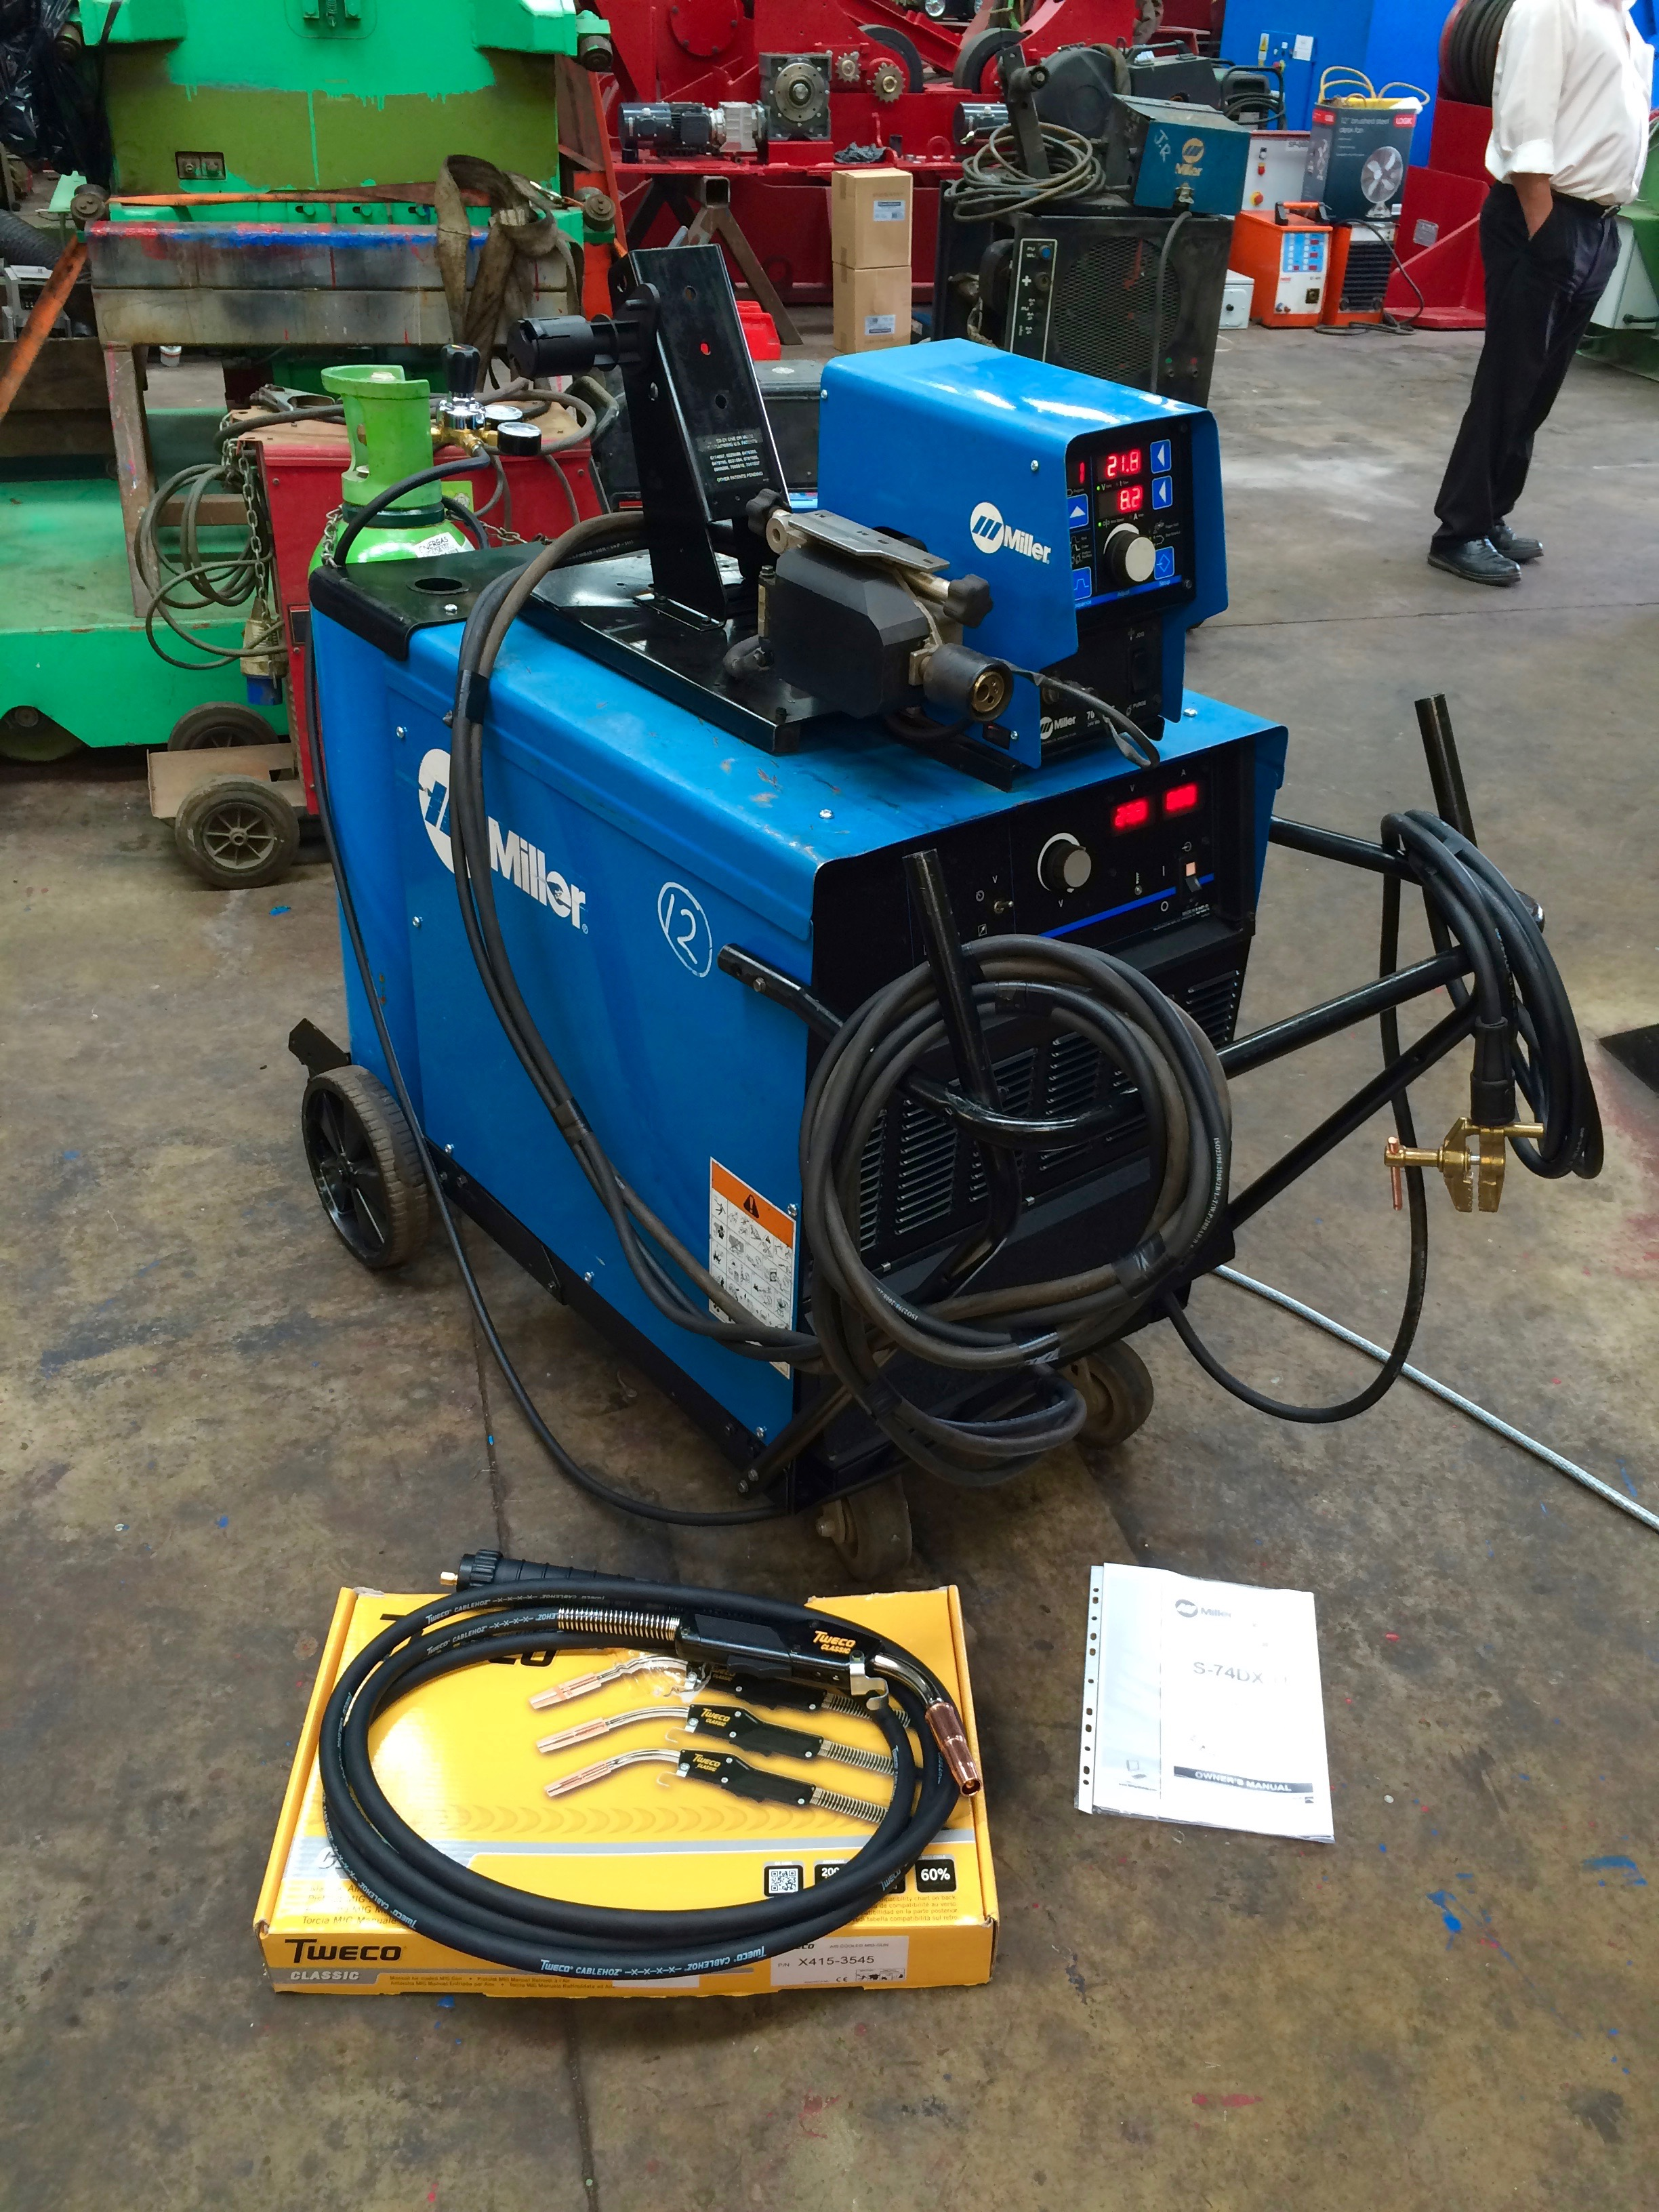 Mig Welder For Sale >> Mig Welding Machines Spectrum Welding Supplies Ltd